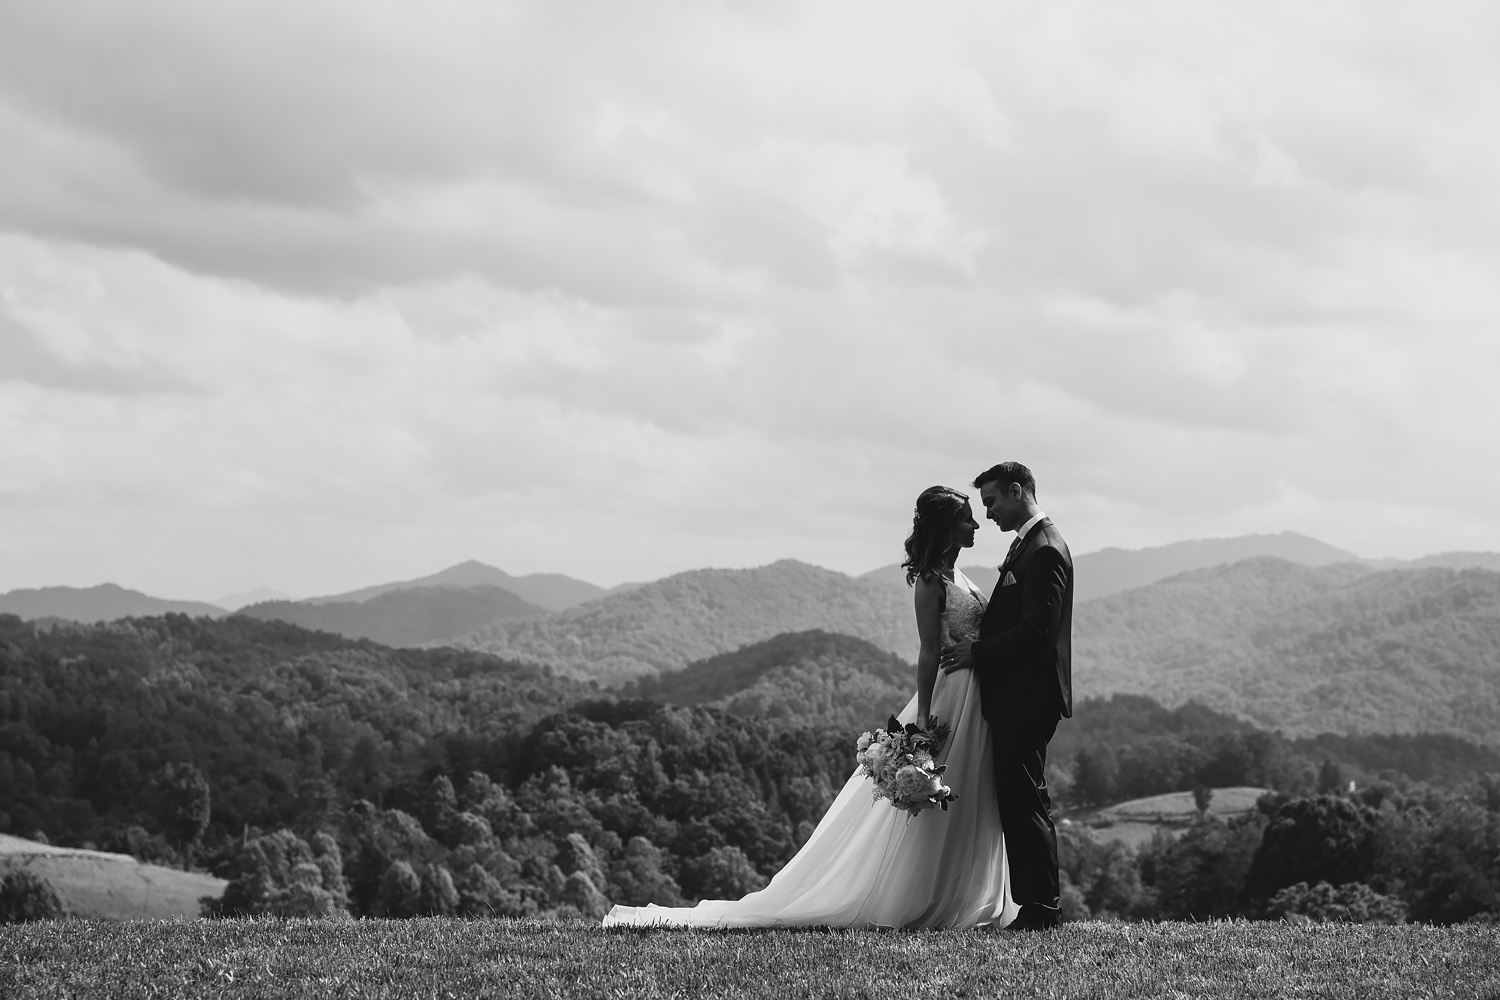 Jeremy-Russell-Asheville-Ridge-Venue-Wedding-17-050.jpg